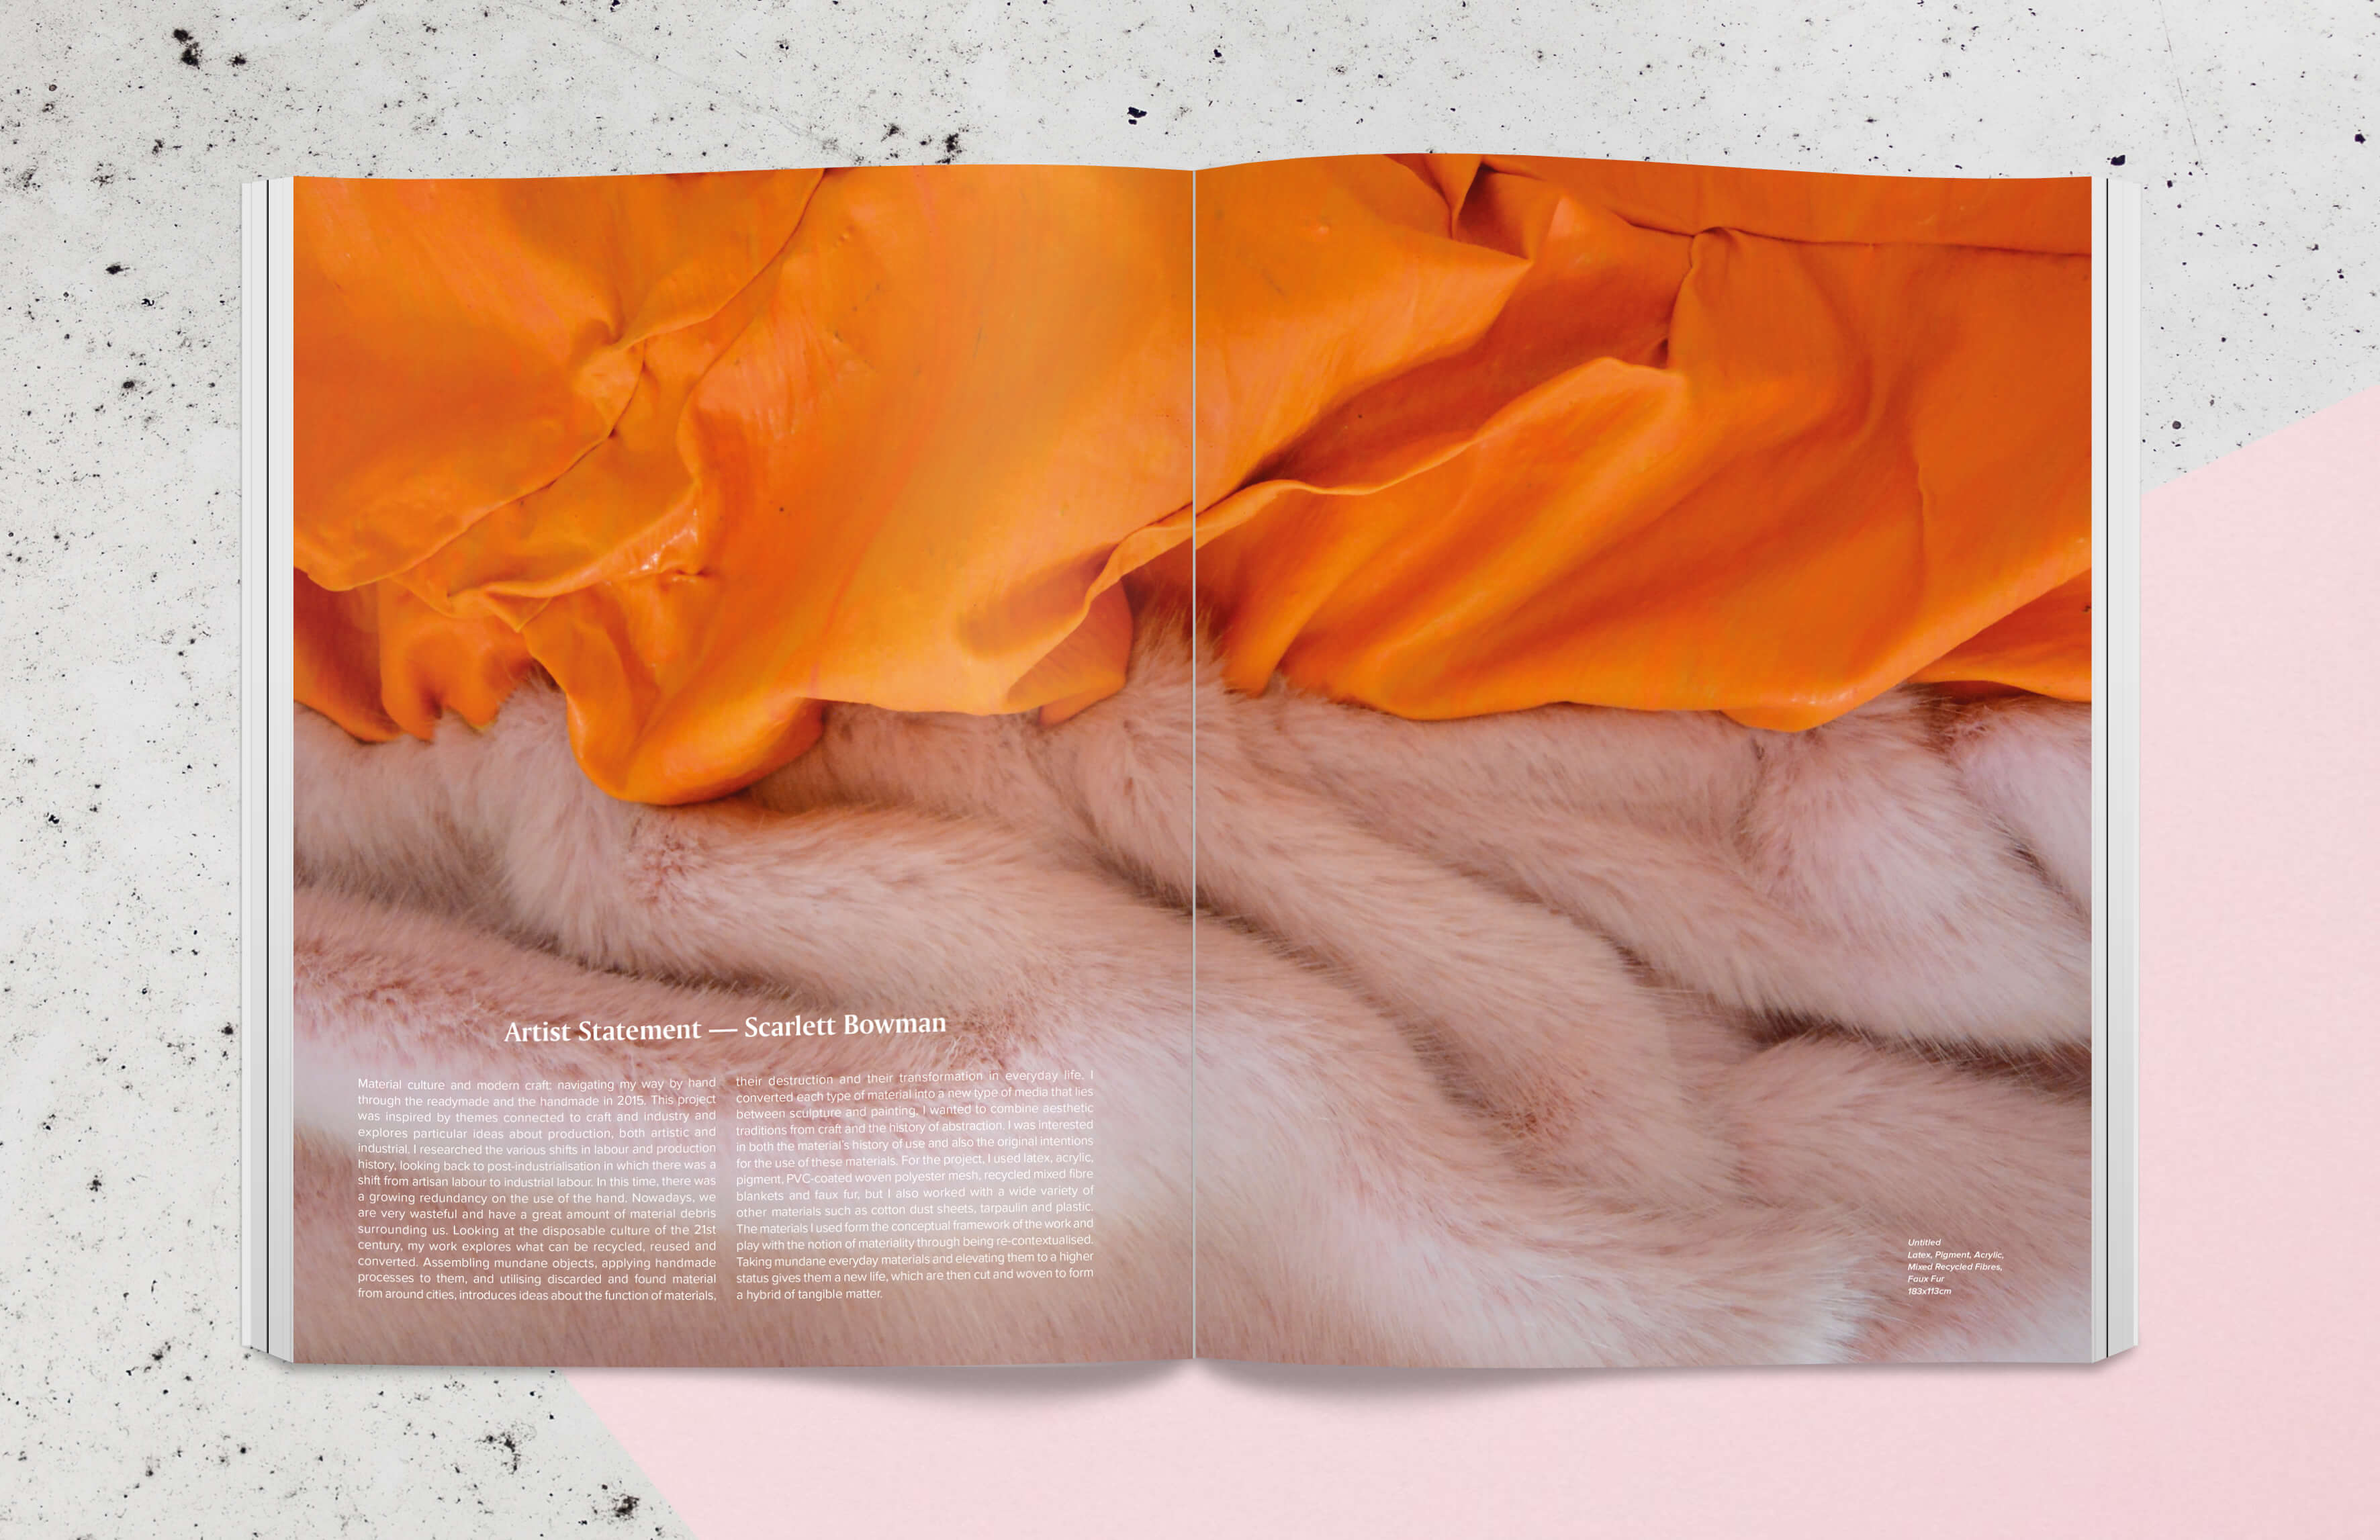 Magazine spread showing two pieces of fabric by artist Scarlett Bowman